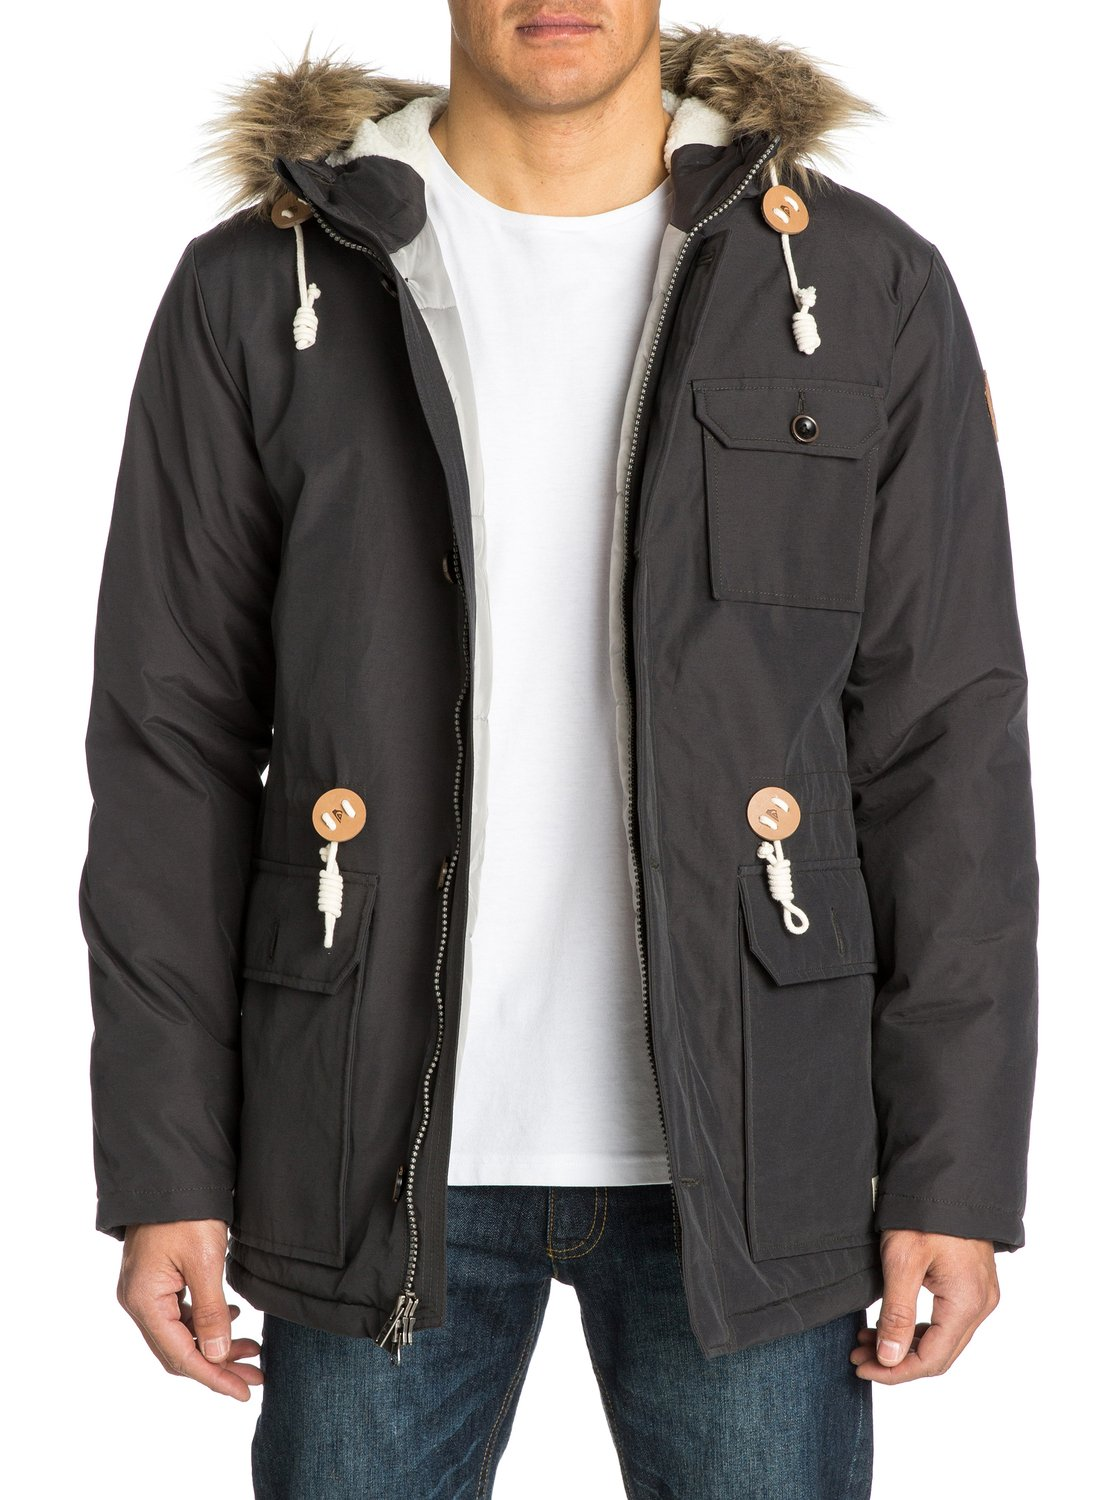 Quiksilver leather jacket